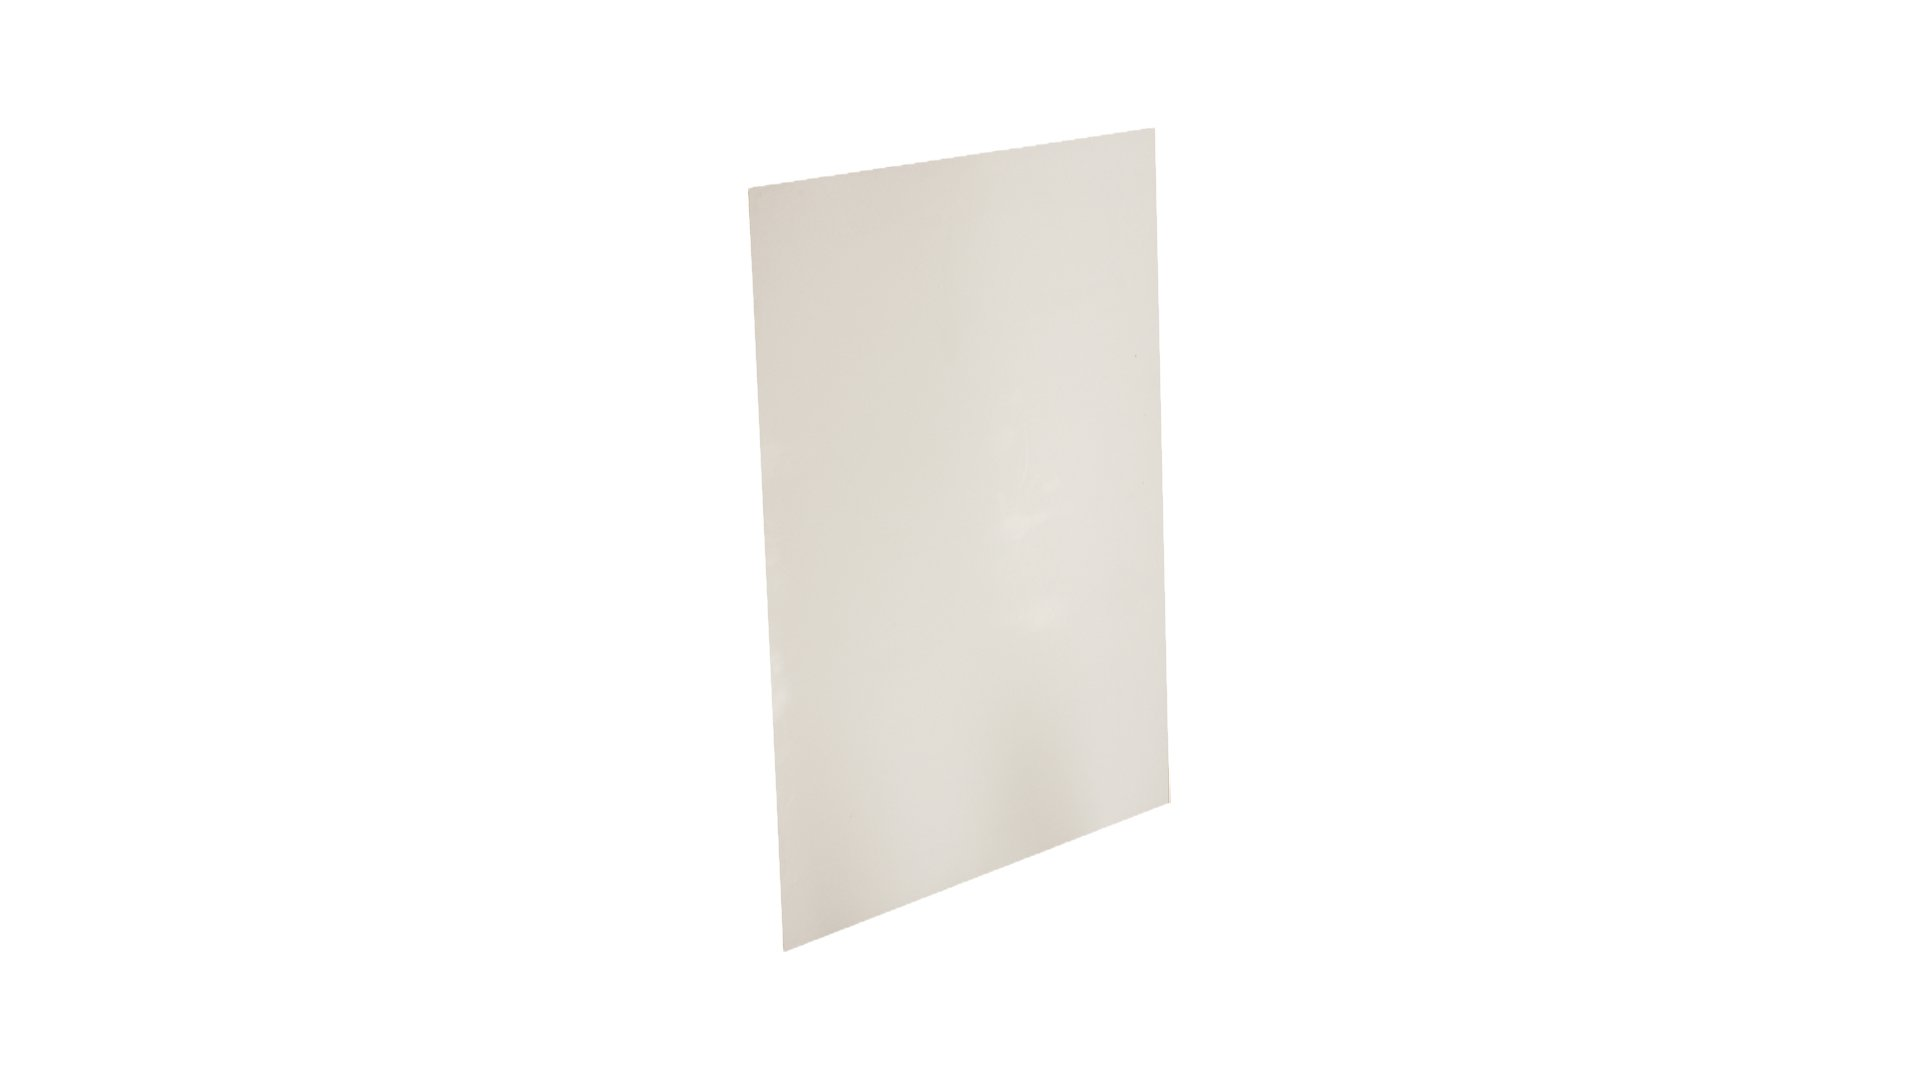 Sterling Seal & Supply Expanded PTFE Sheet, 1/16'' Thick, 12'' x 6'', White (1 sheet)